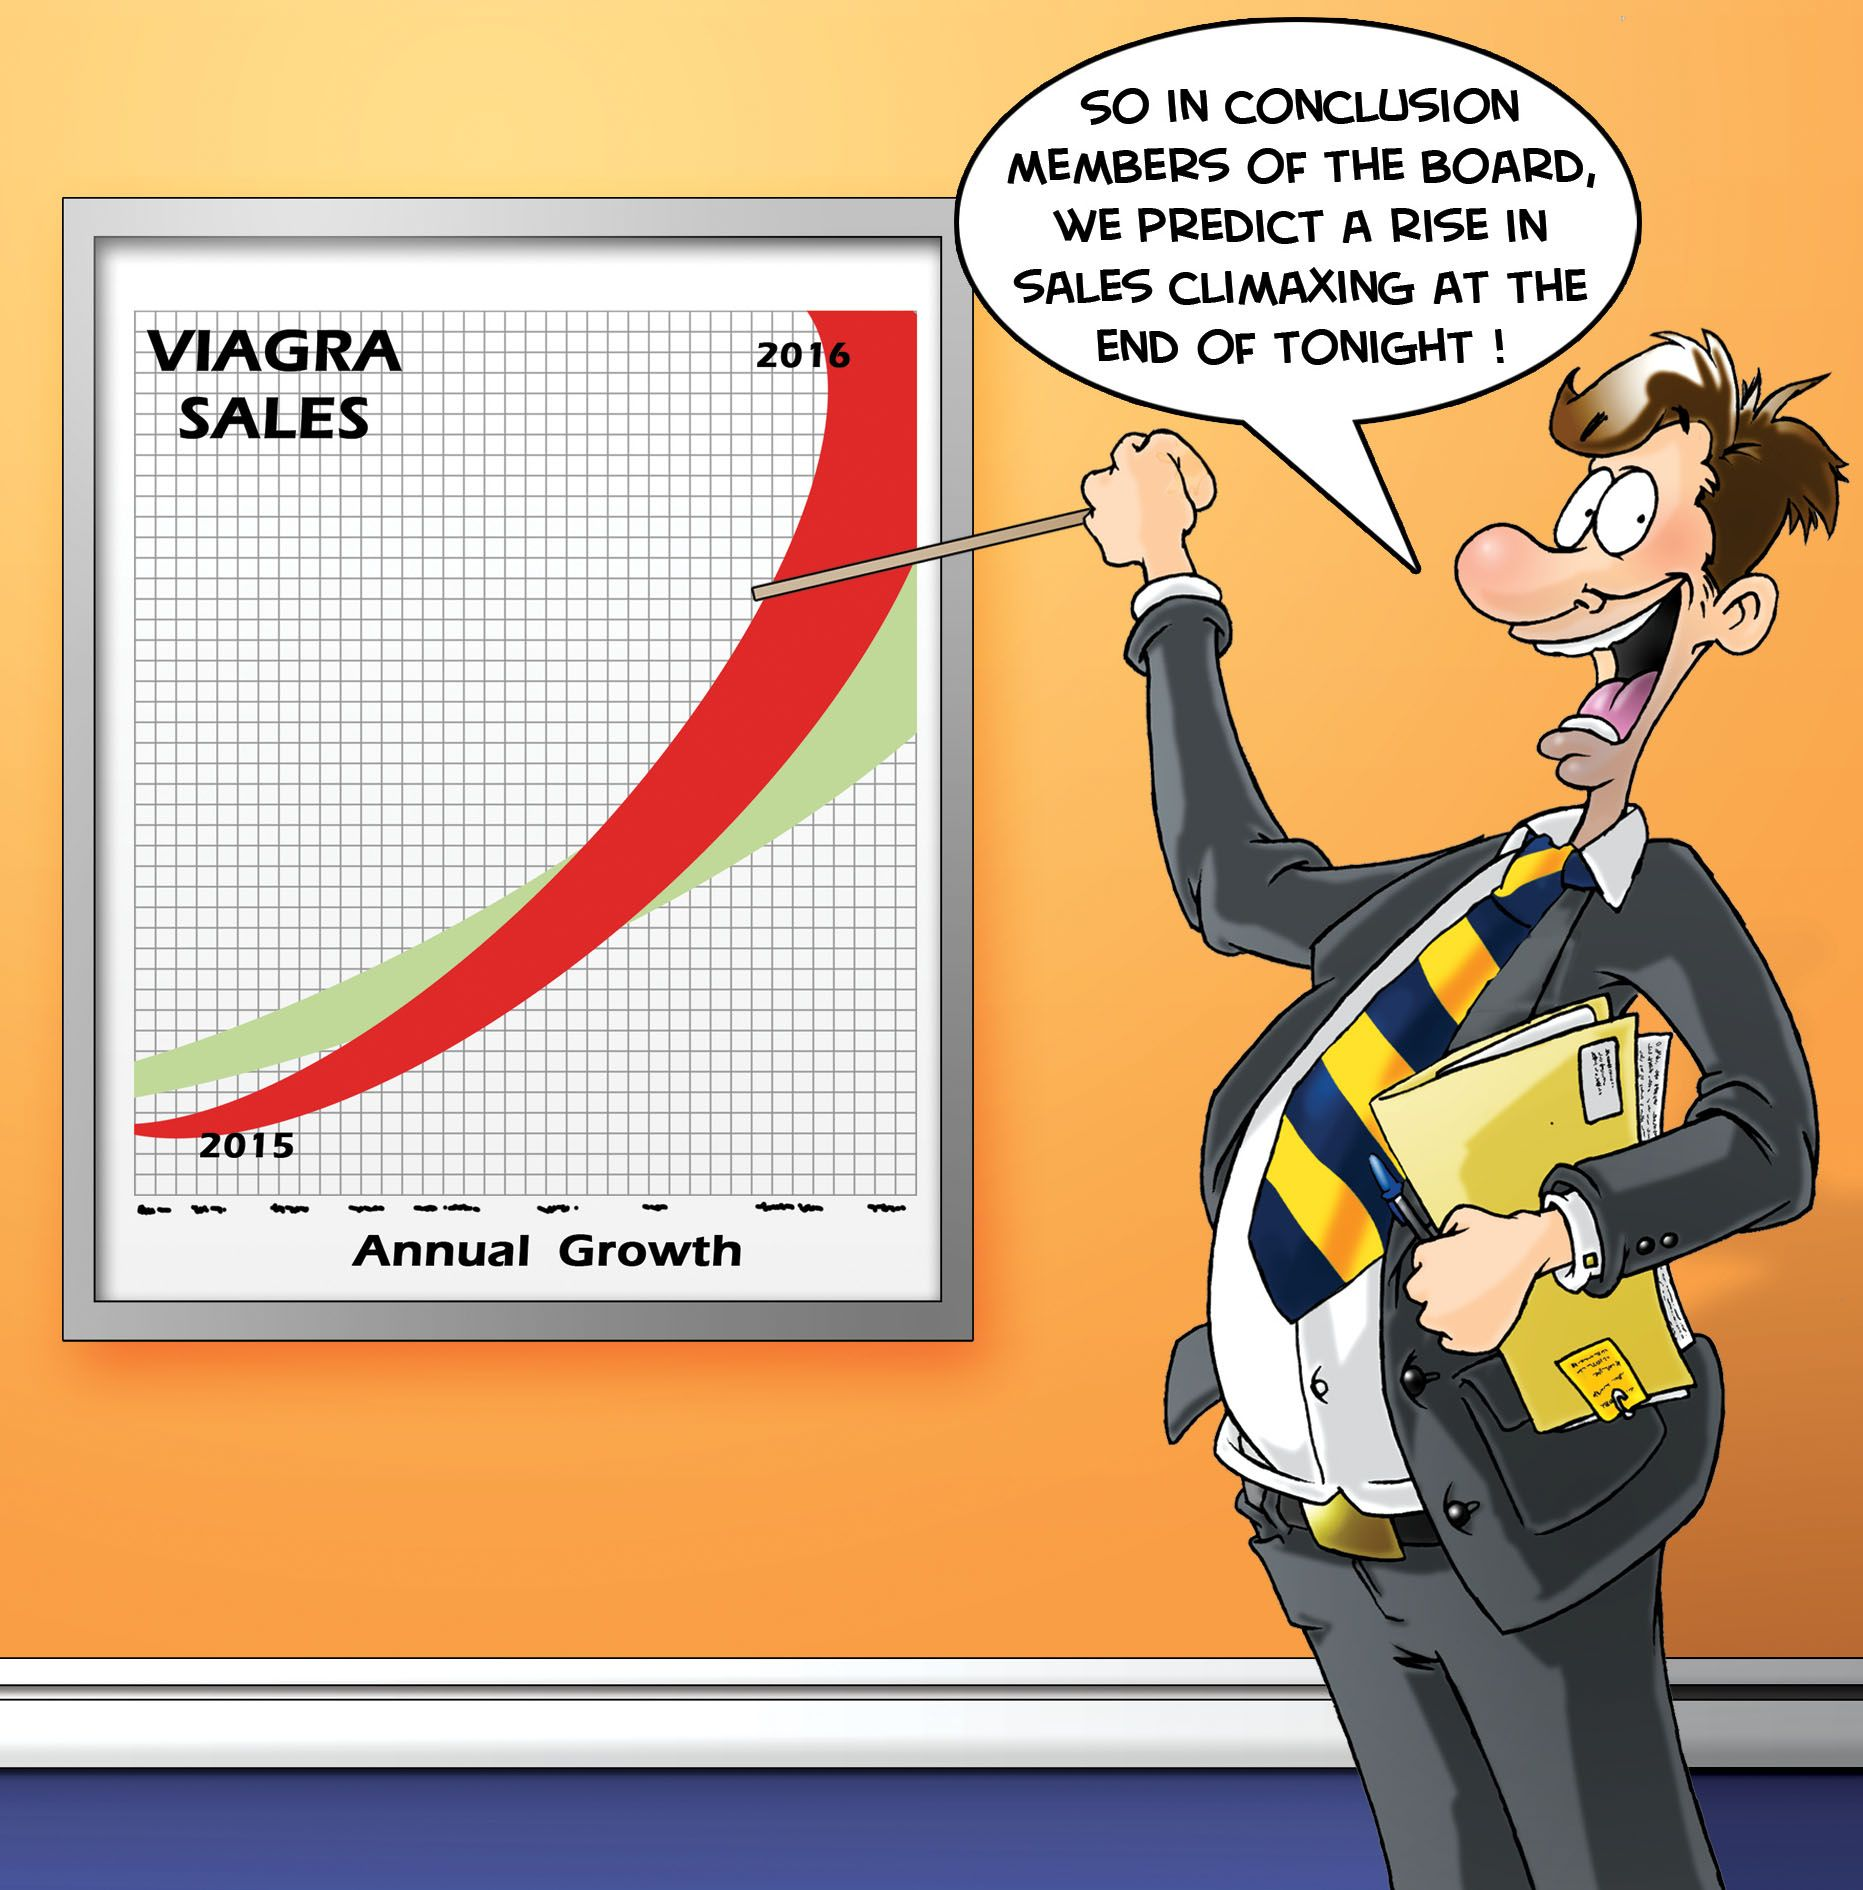 Viagra Sales Numbers